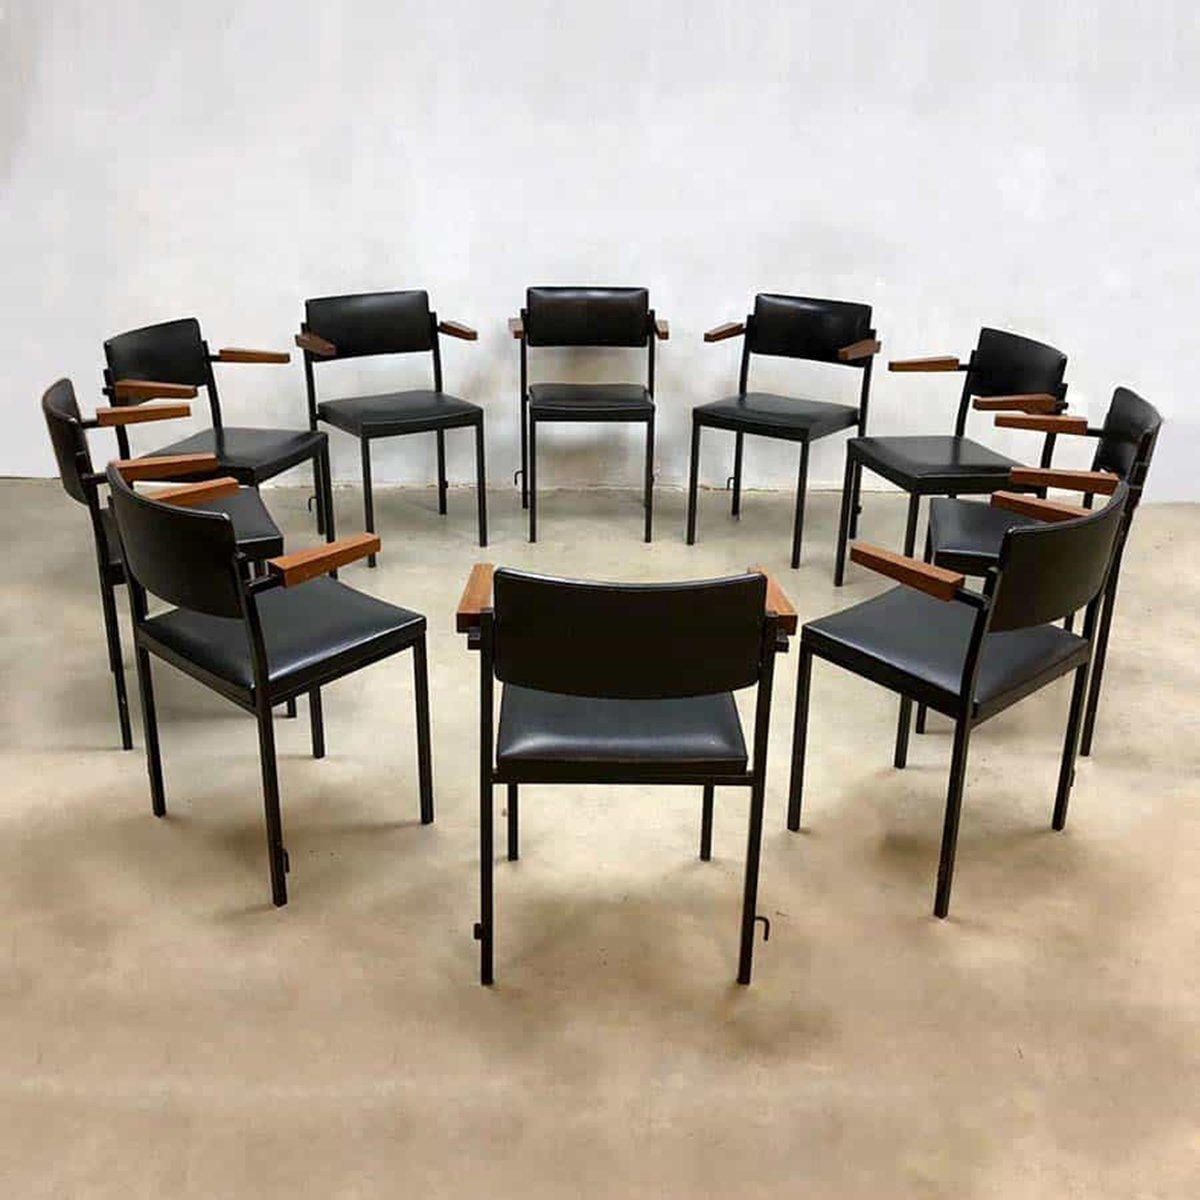 Pleasant 10 X Minimal Industrial Dining Chair 1960S 91480 Alphanode Cool Chair Designs And Ideas Alphanodeonline